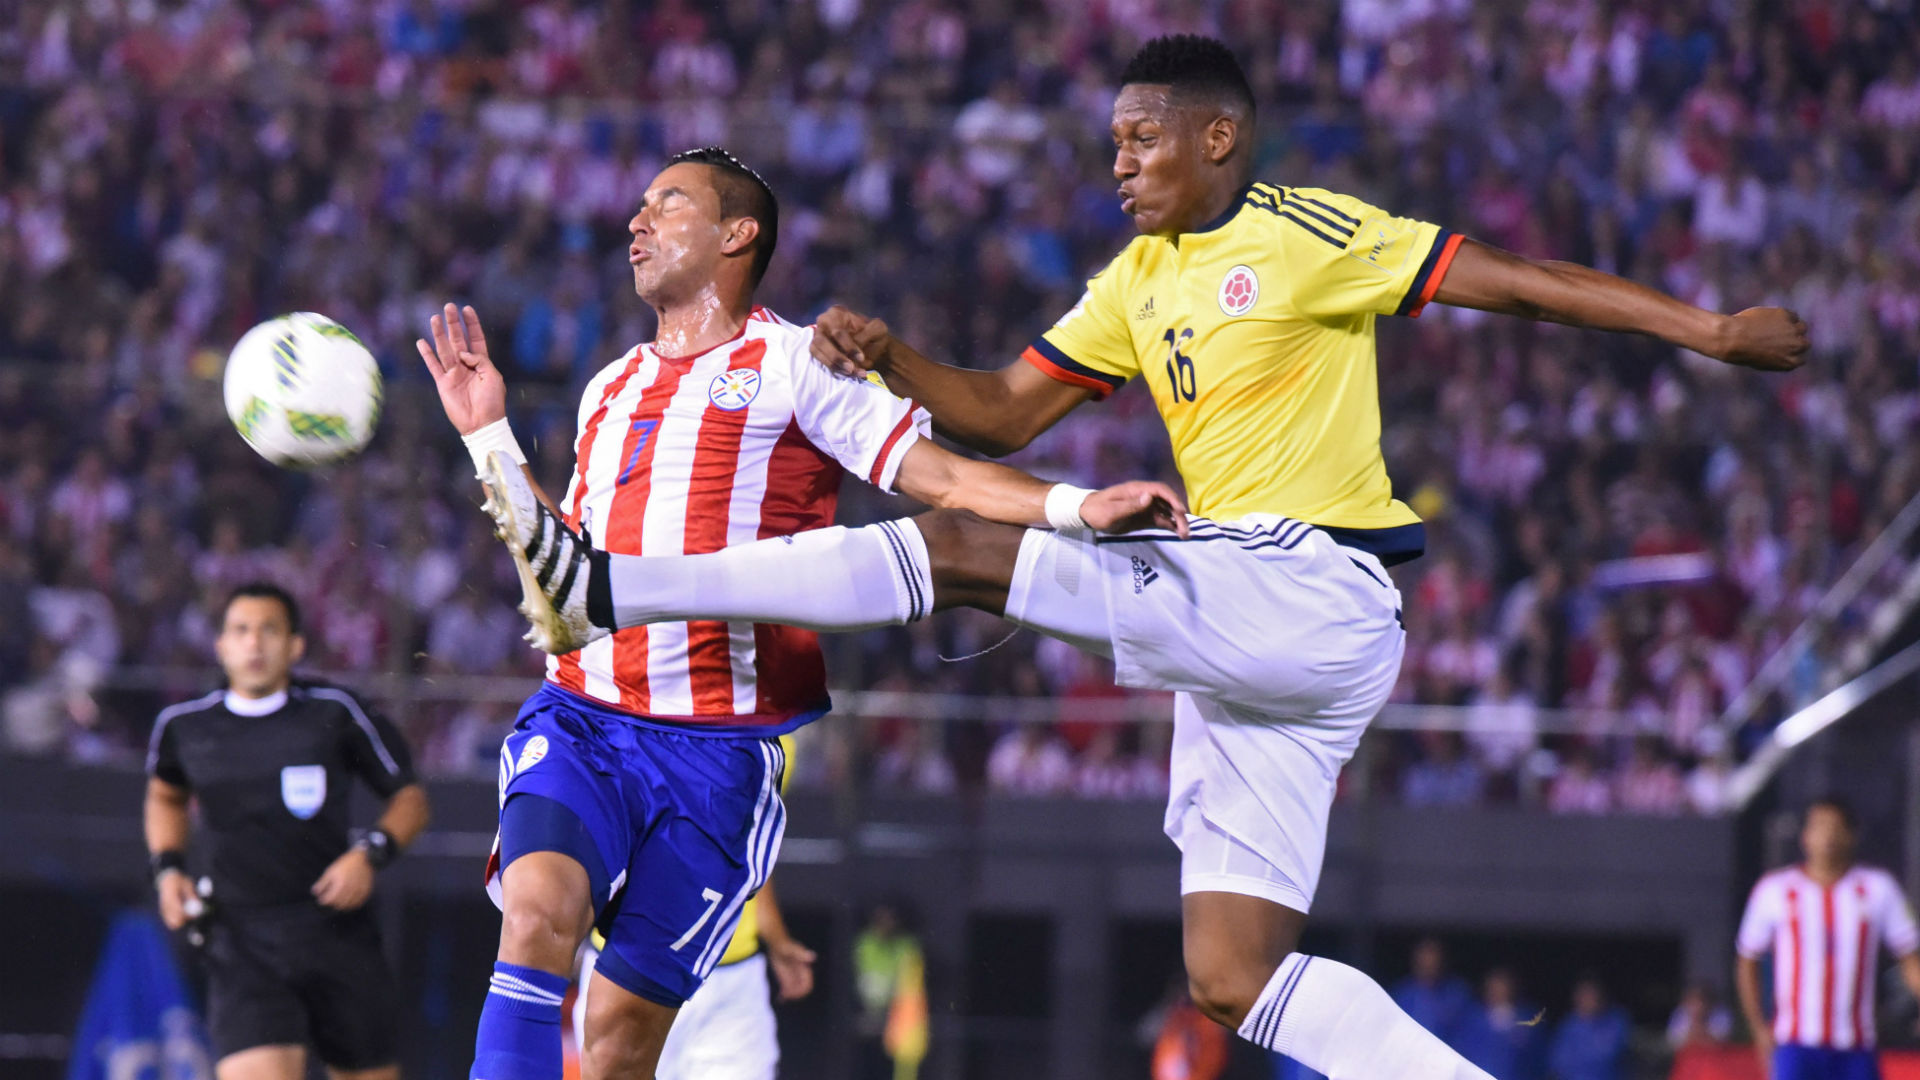 Yerri Mina Paraguay vs Colombia Eliminatoria 2016